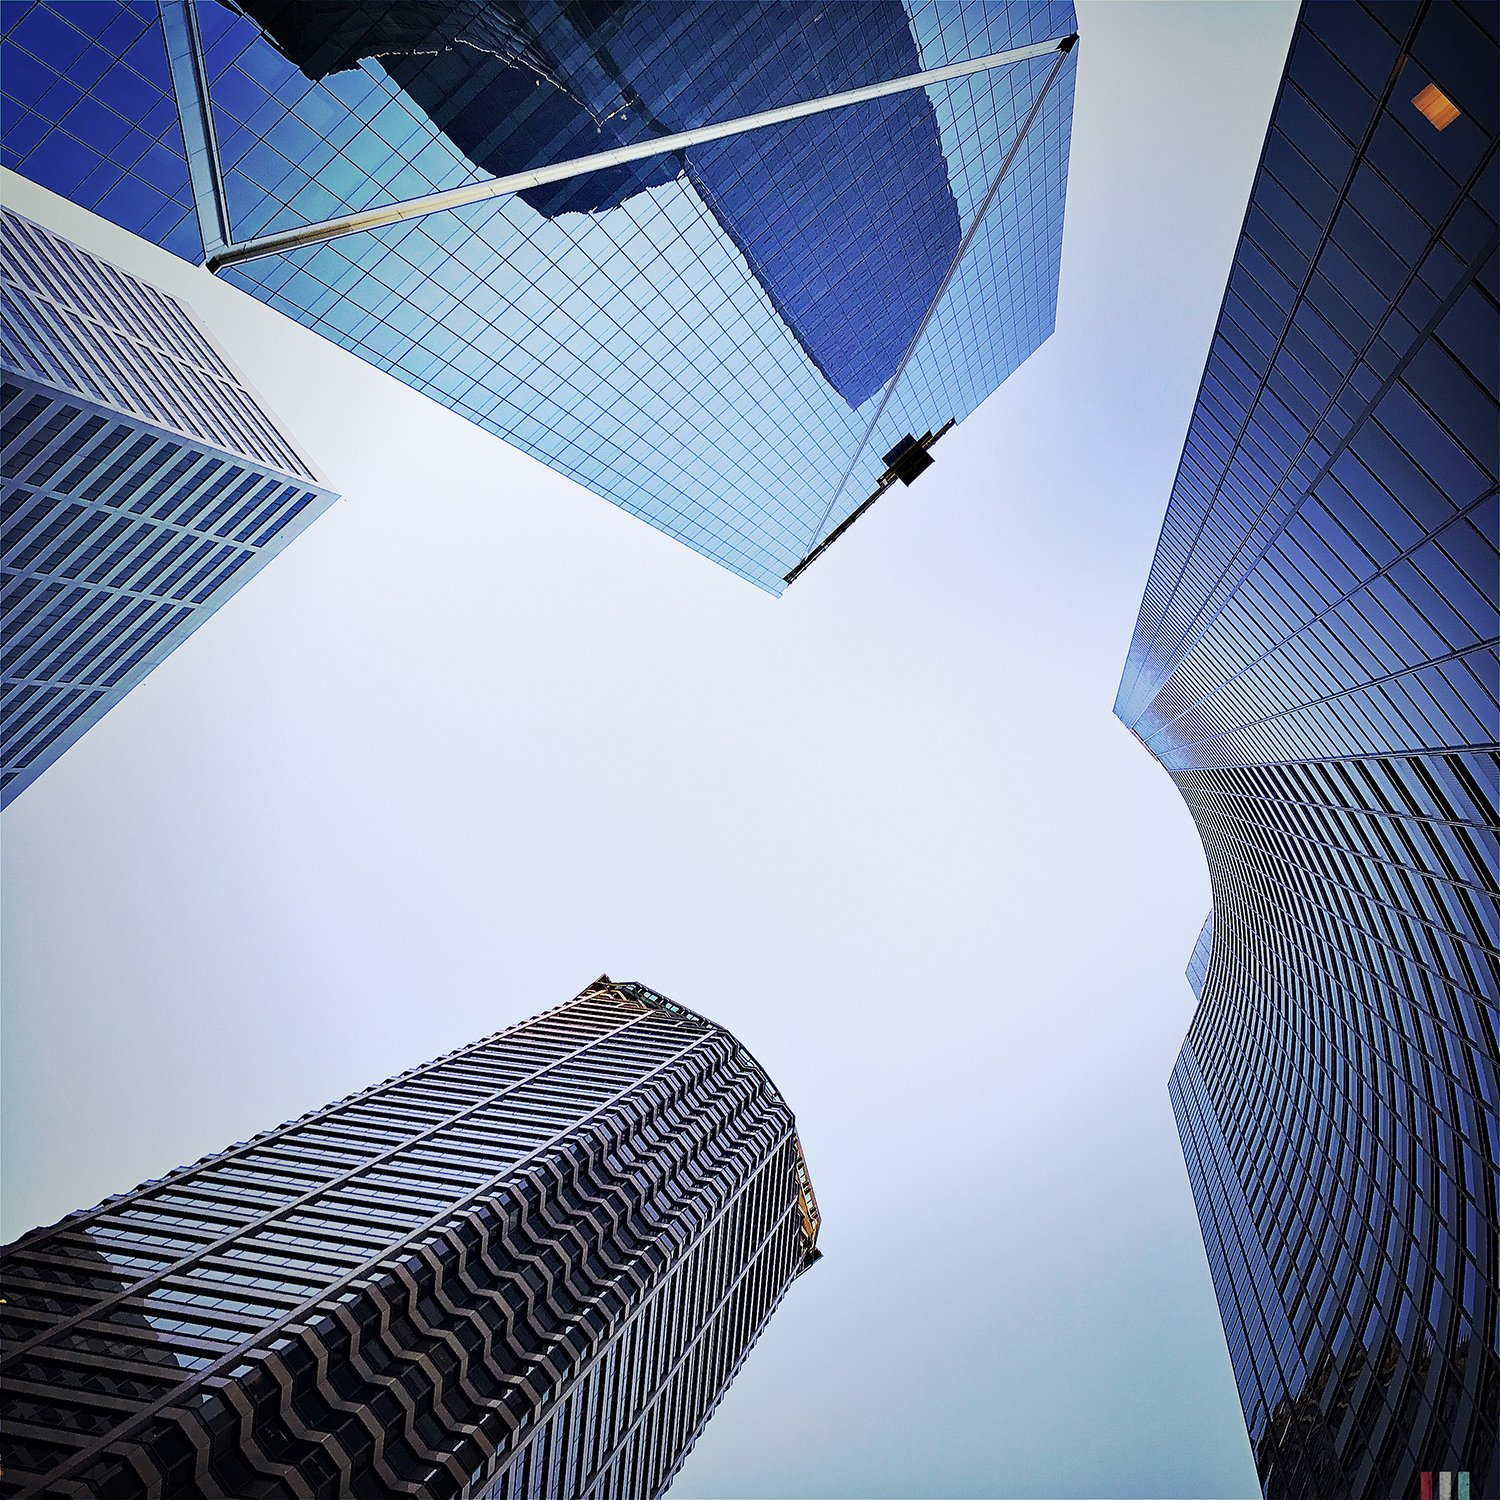 sky high, skyscrapers, buildings, architecture, downtown, glass and steel, look up